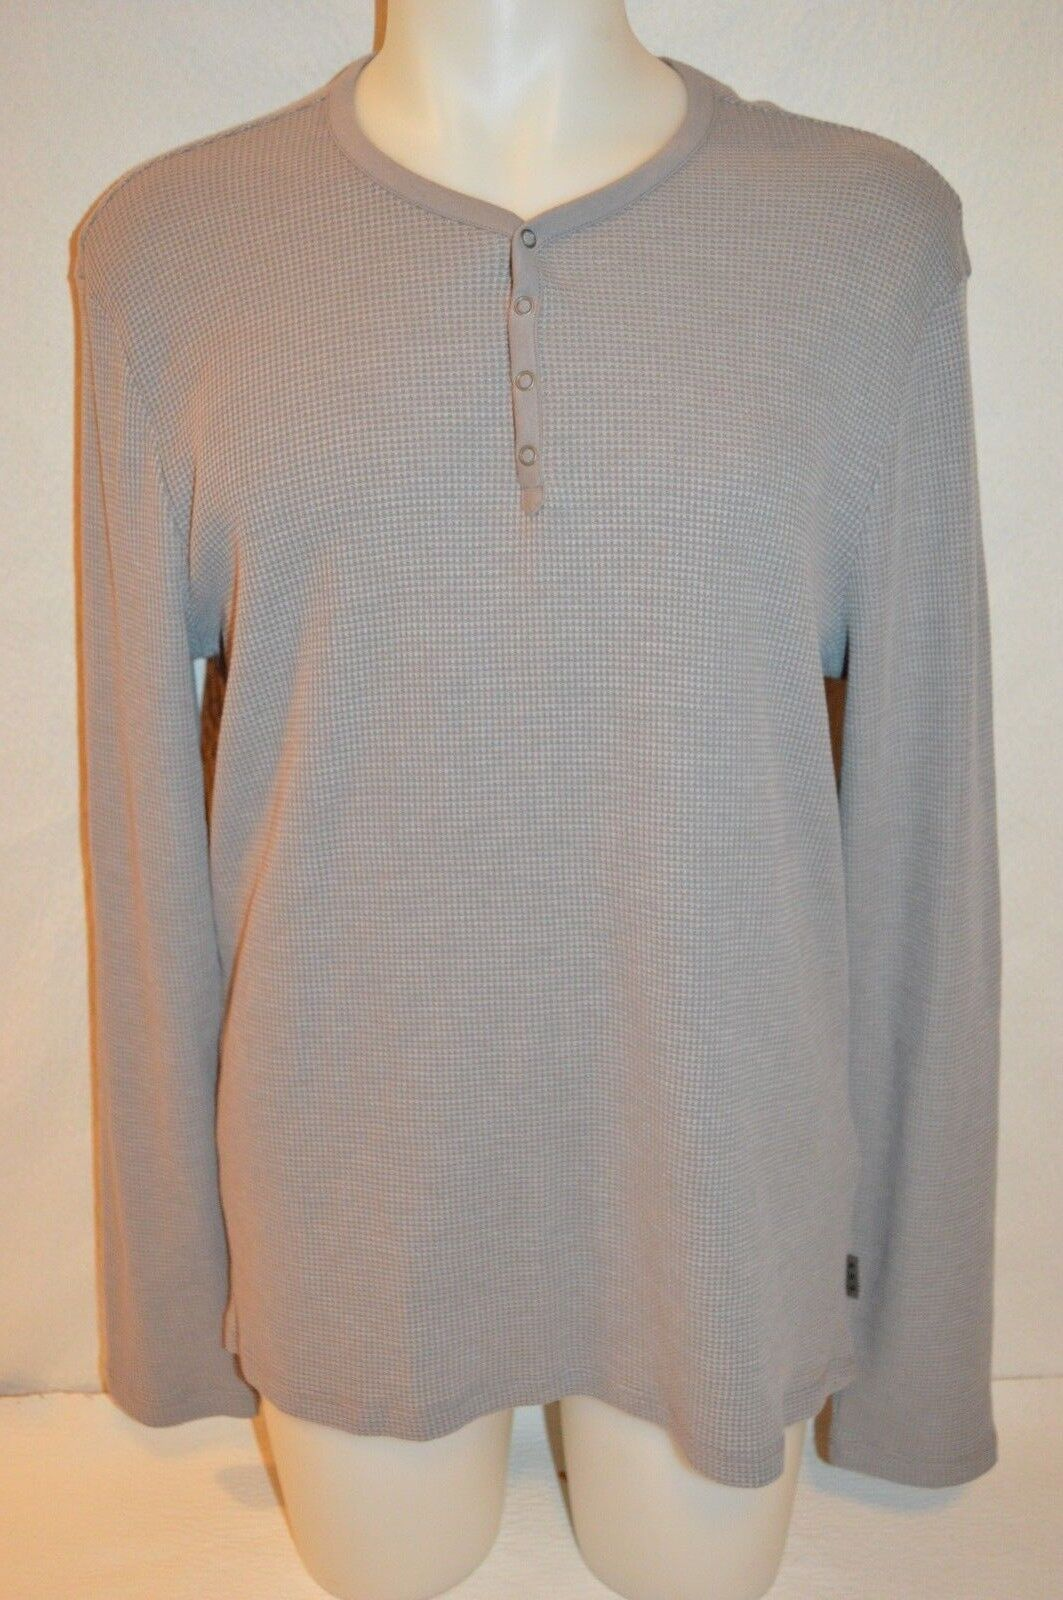 JOHN VARVATOS Star USA Man's Long Sleeve T-shirt NEW Größe Large Retail 128